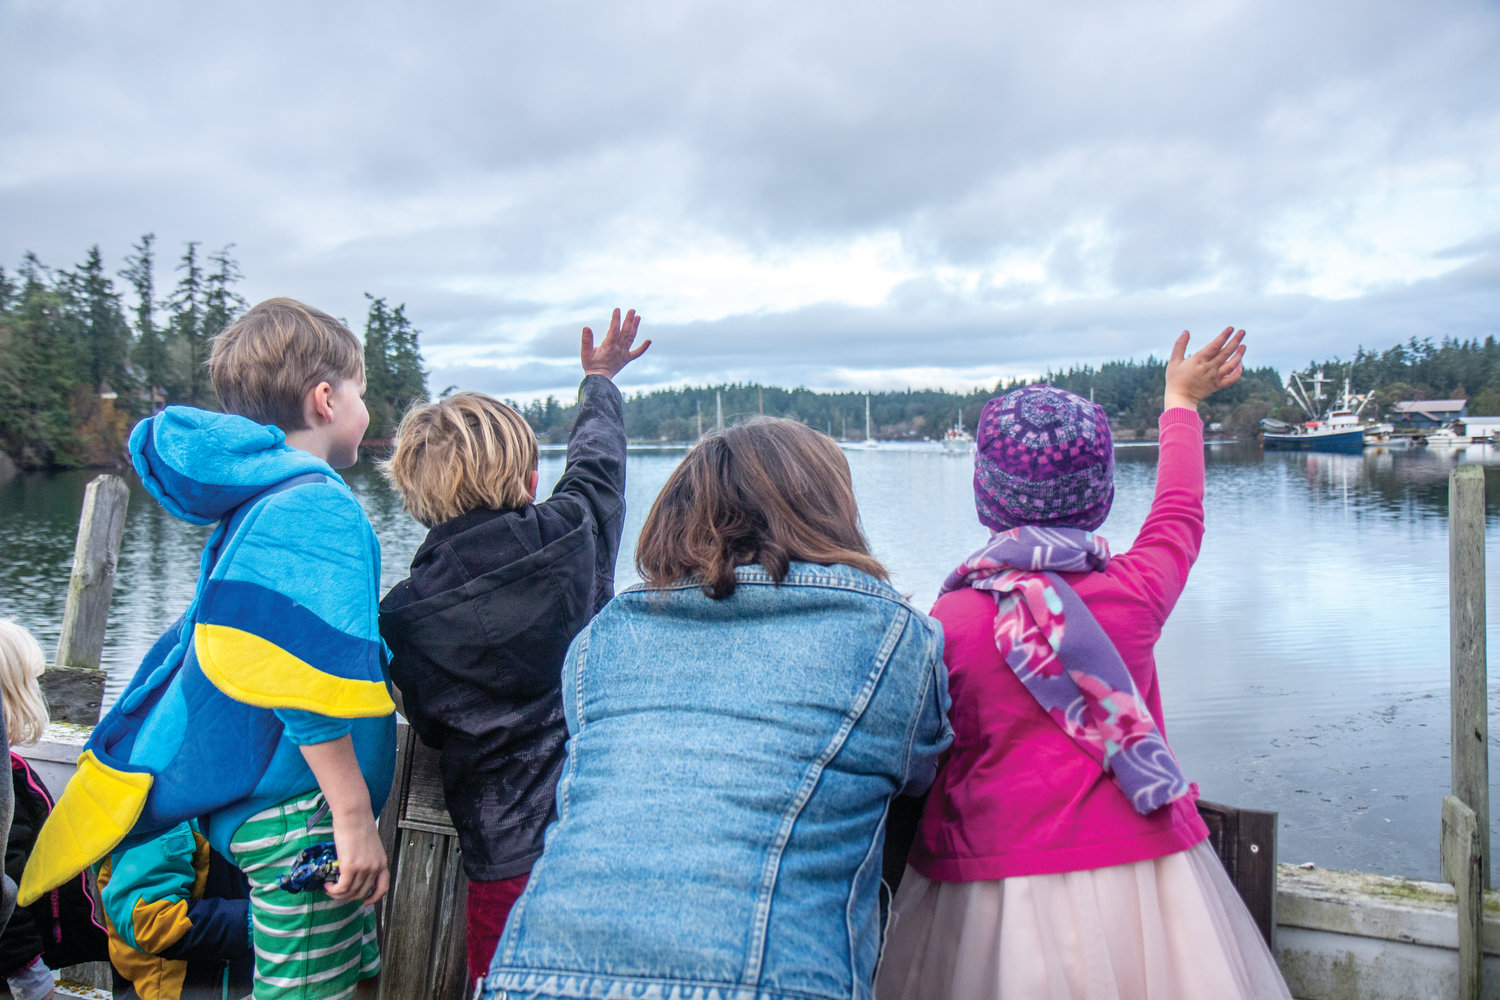 Kids wave as Santa approaches Nordland by boat.